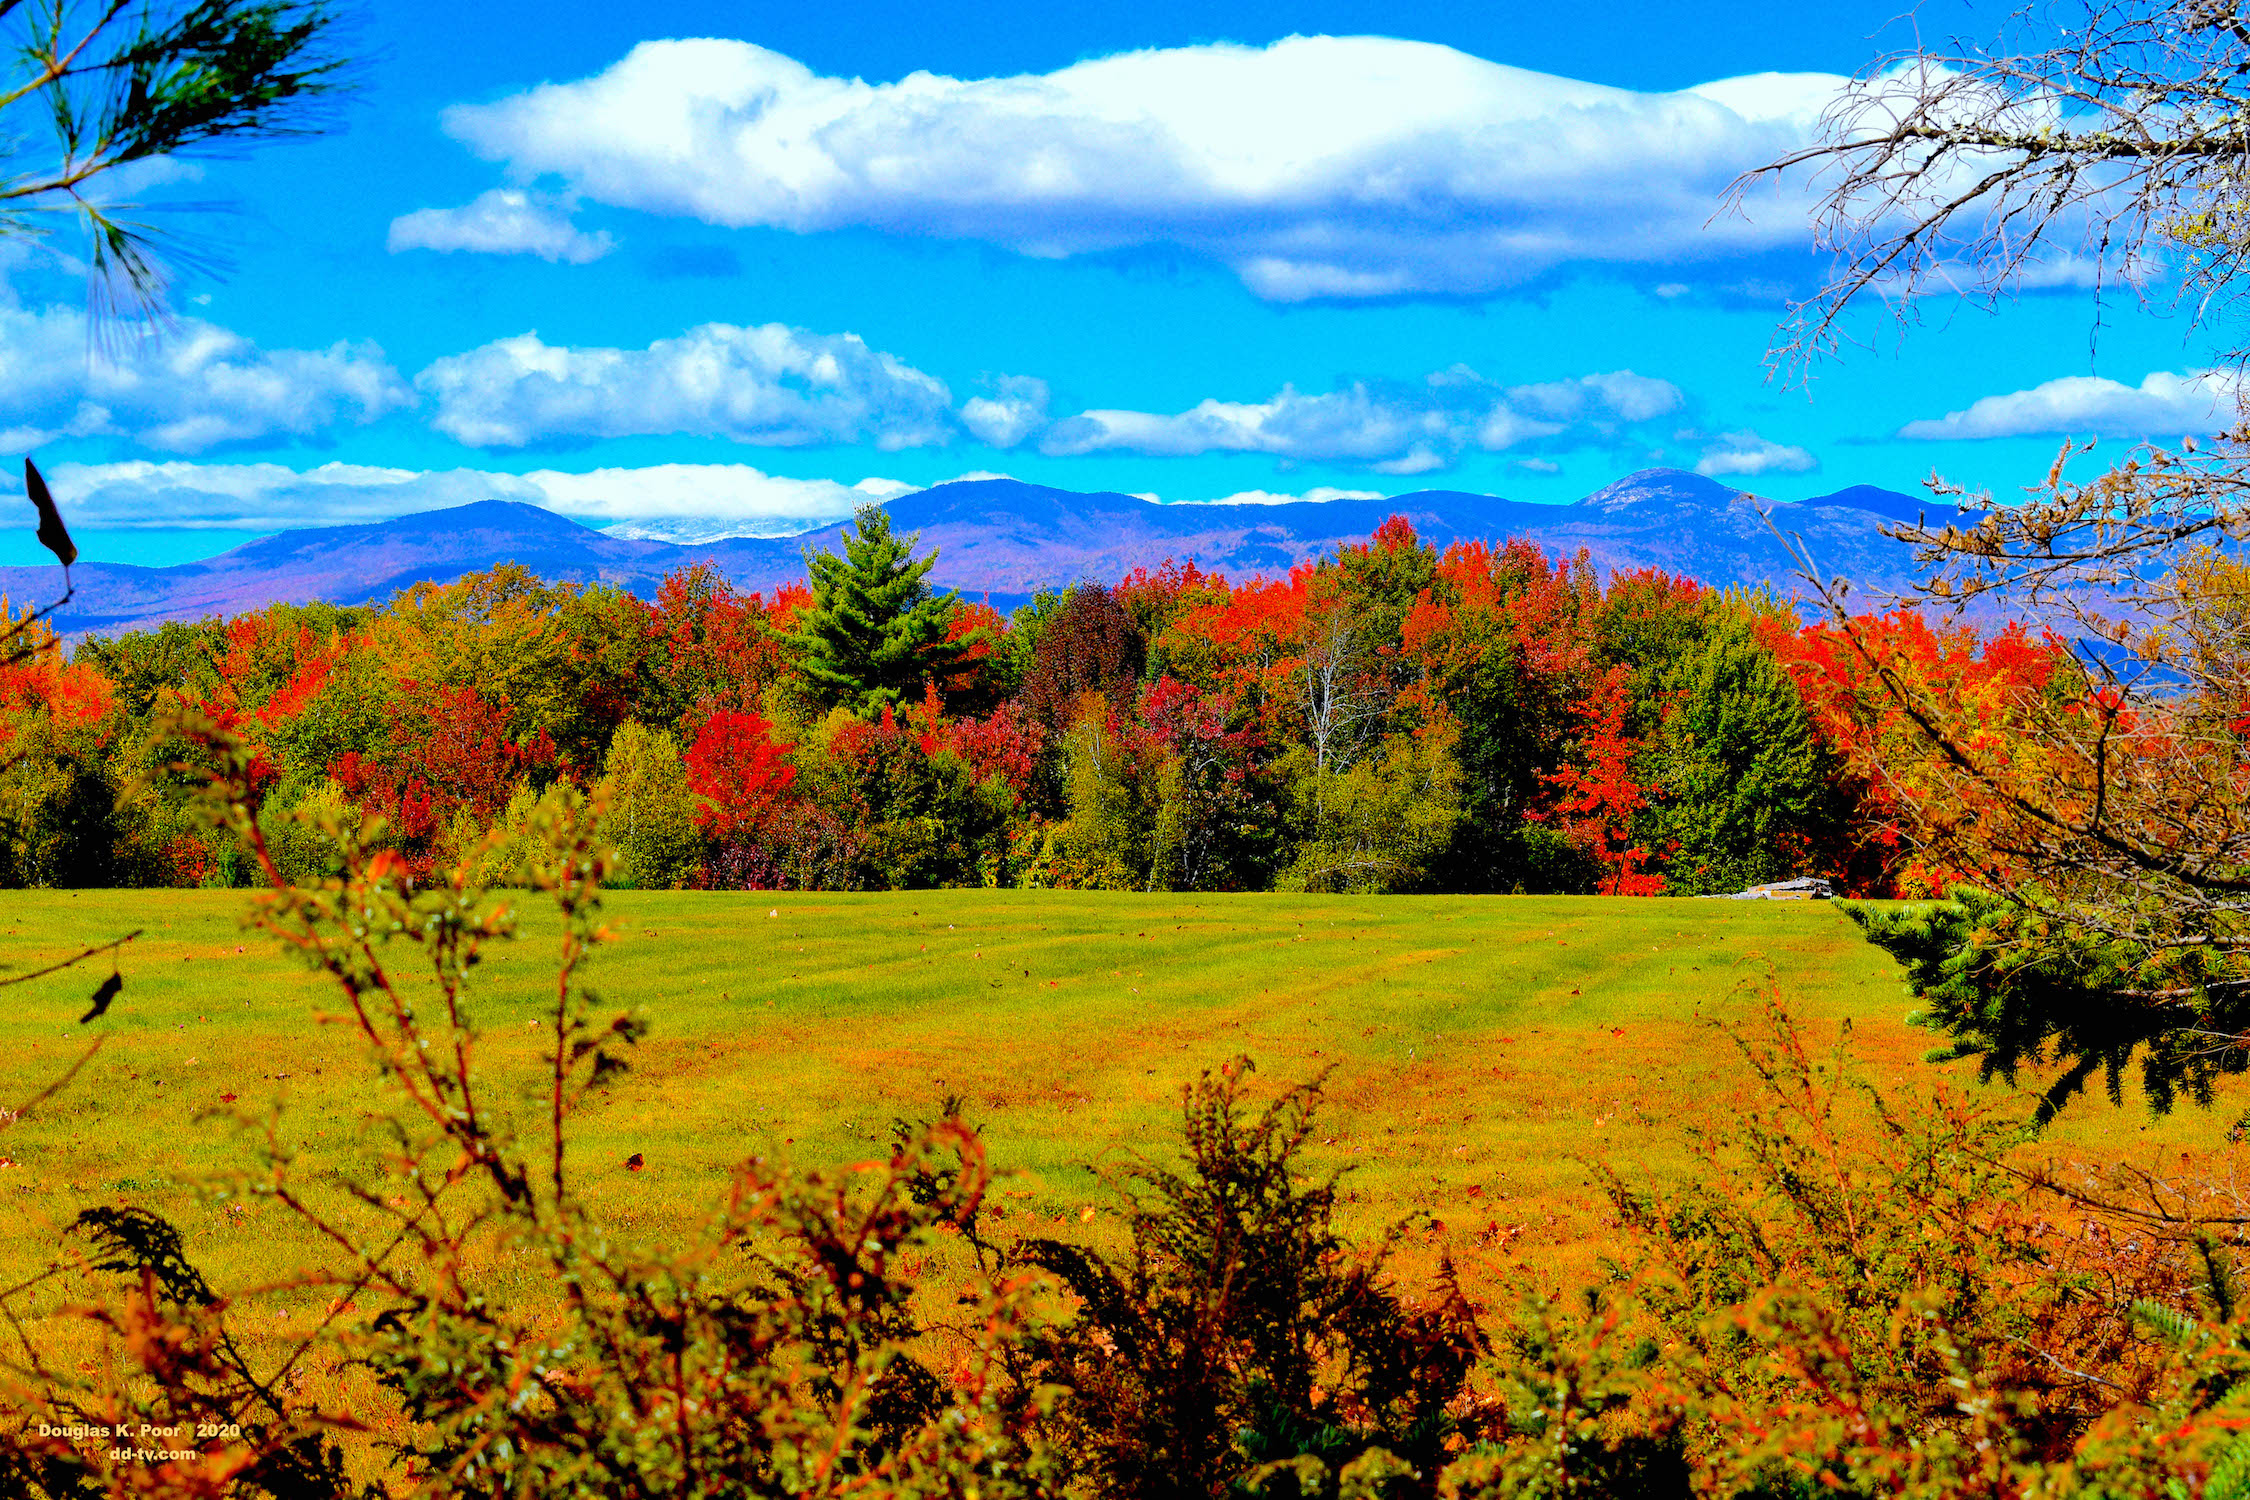 ===============BUSHES-FIELD-FOLIAGE AND-MTNS========================================================================================================================================================================BUSHES-FIELD-FOLIAGE AND-MTNS